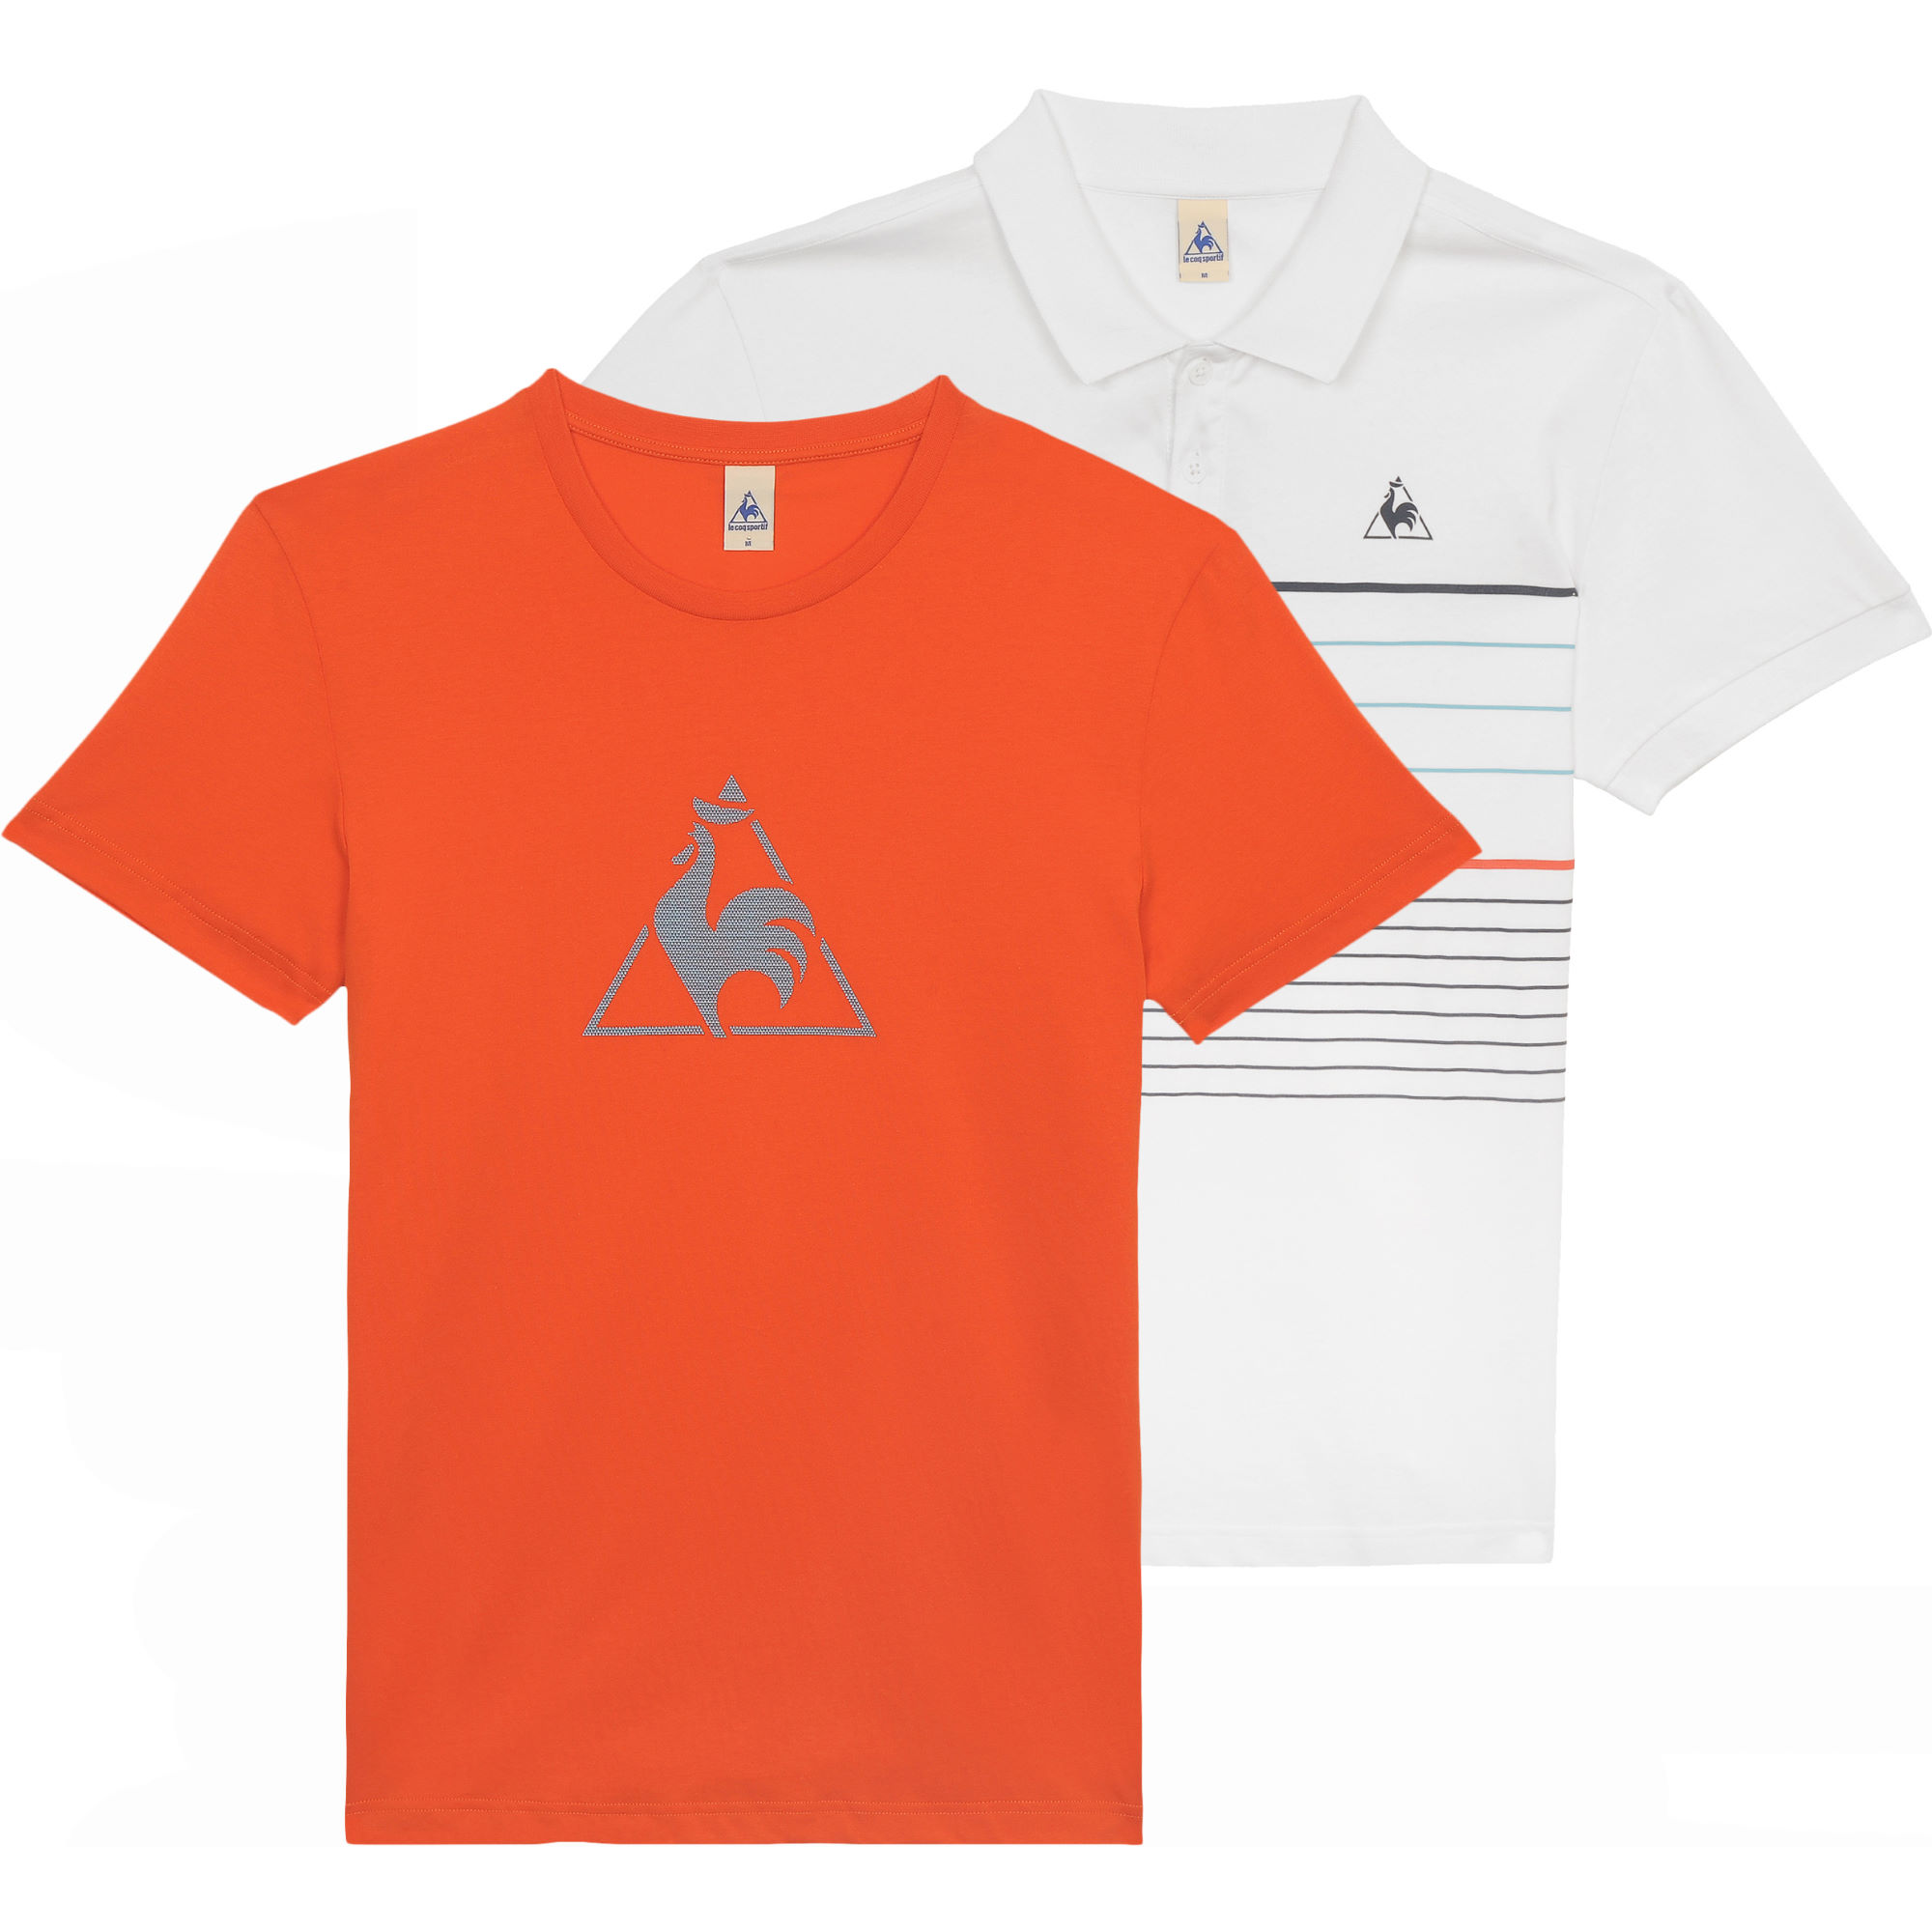 wiggle le coq sportif sarce polo shirt and chronic t shirt pack t shirts. Black Bedroom Furniture Sets. Home Design Ideas